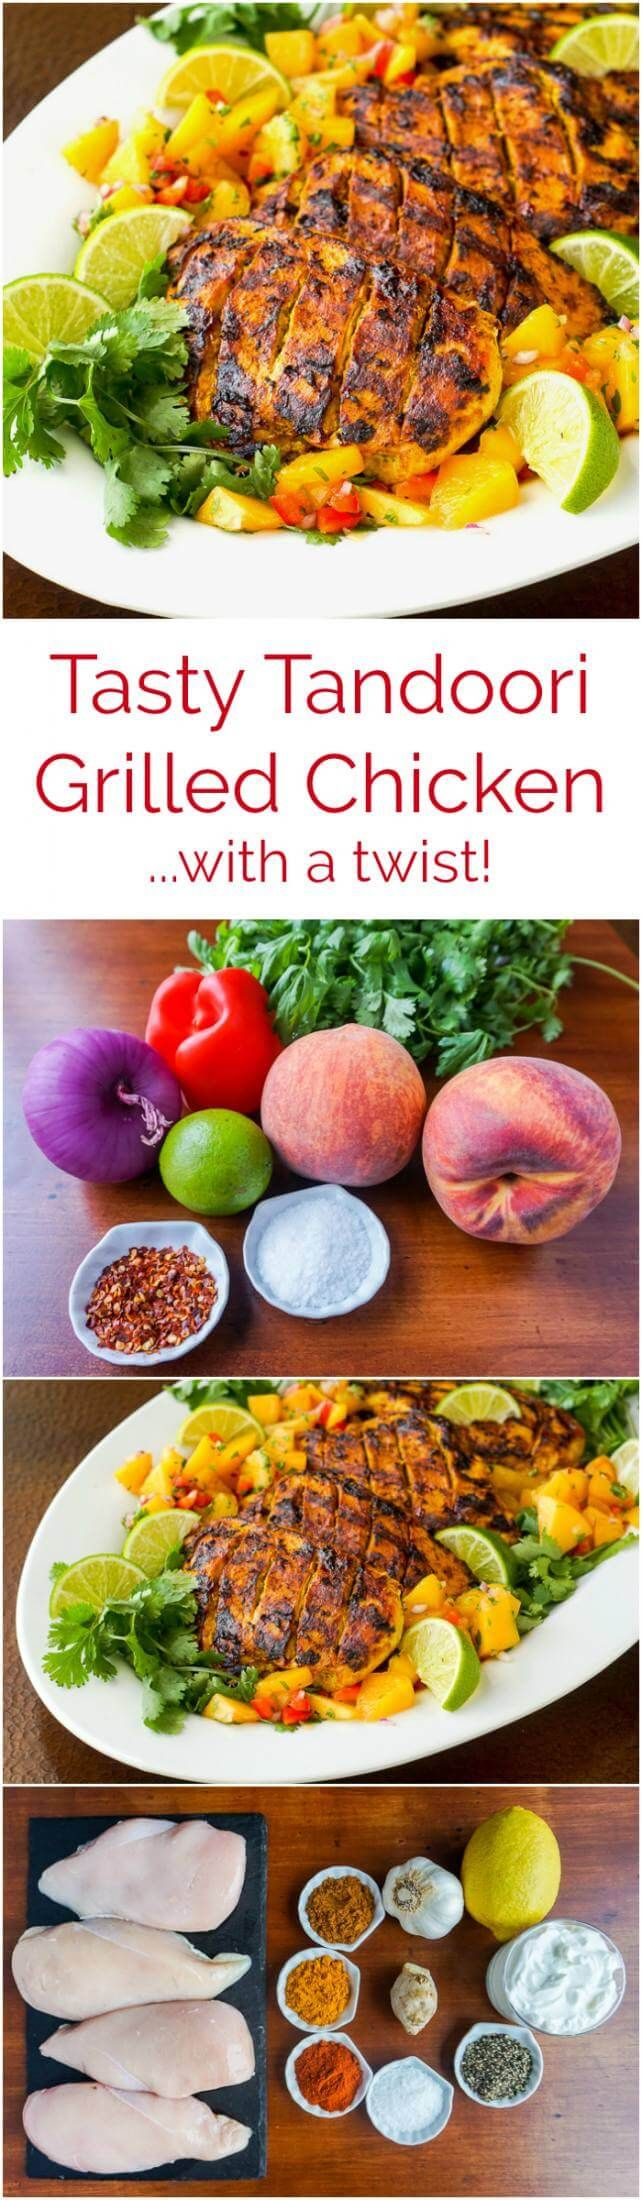 Tasty Tandoori Grilled Chicken with a Twist – Subtle Indian flavours accented with a fresh peach salsa. A perfect meal for the whole family. Dairy products have always played an important part in our family's everyday cooking and eating habits, as they have fora number of Canadians. From pizza to cheesecake to the cream in...Read More